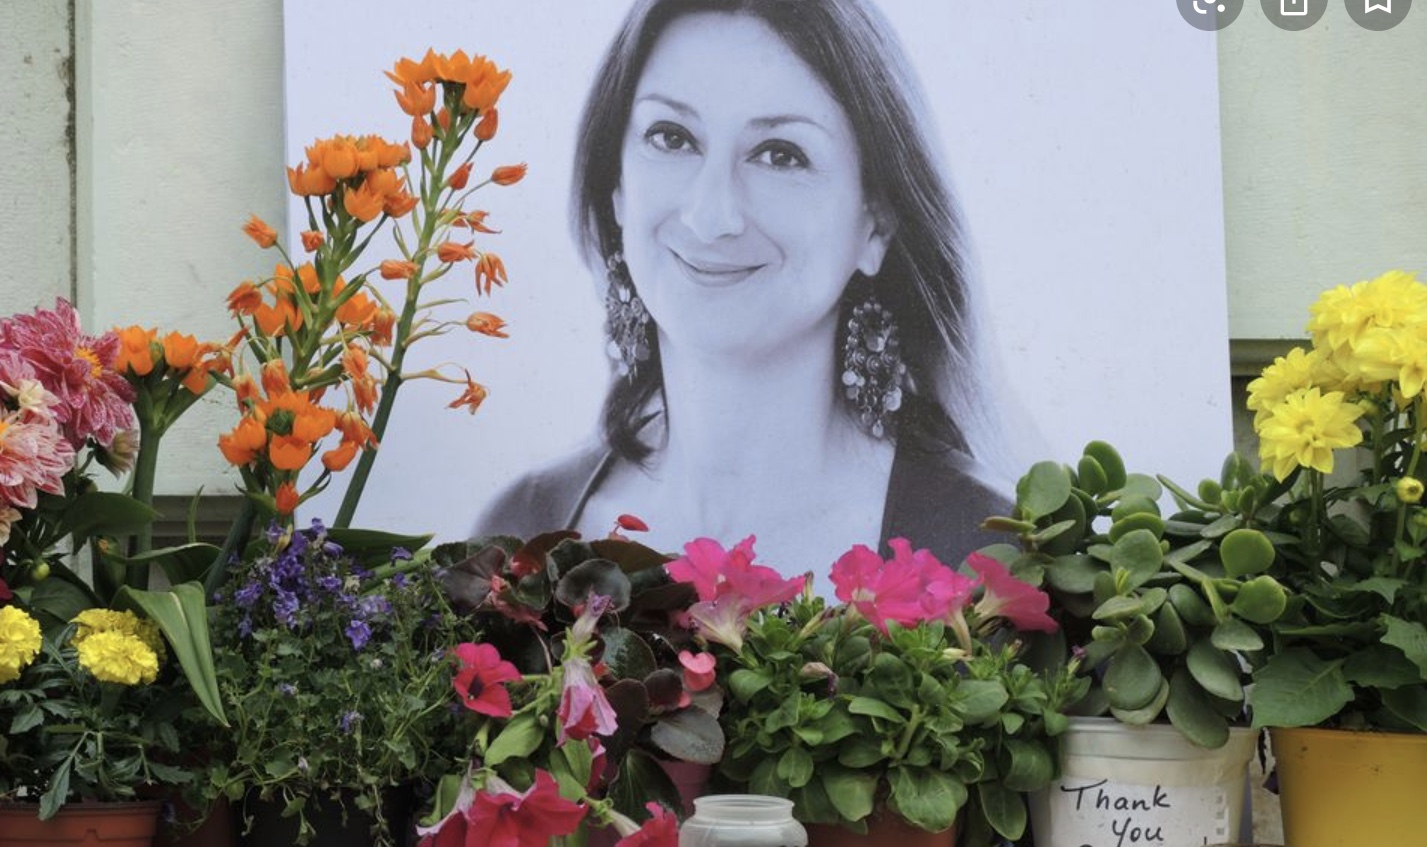 Malta: Three suspects arrested over 2017 killing of journalist